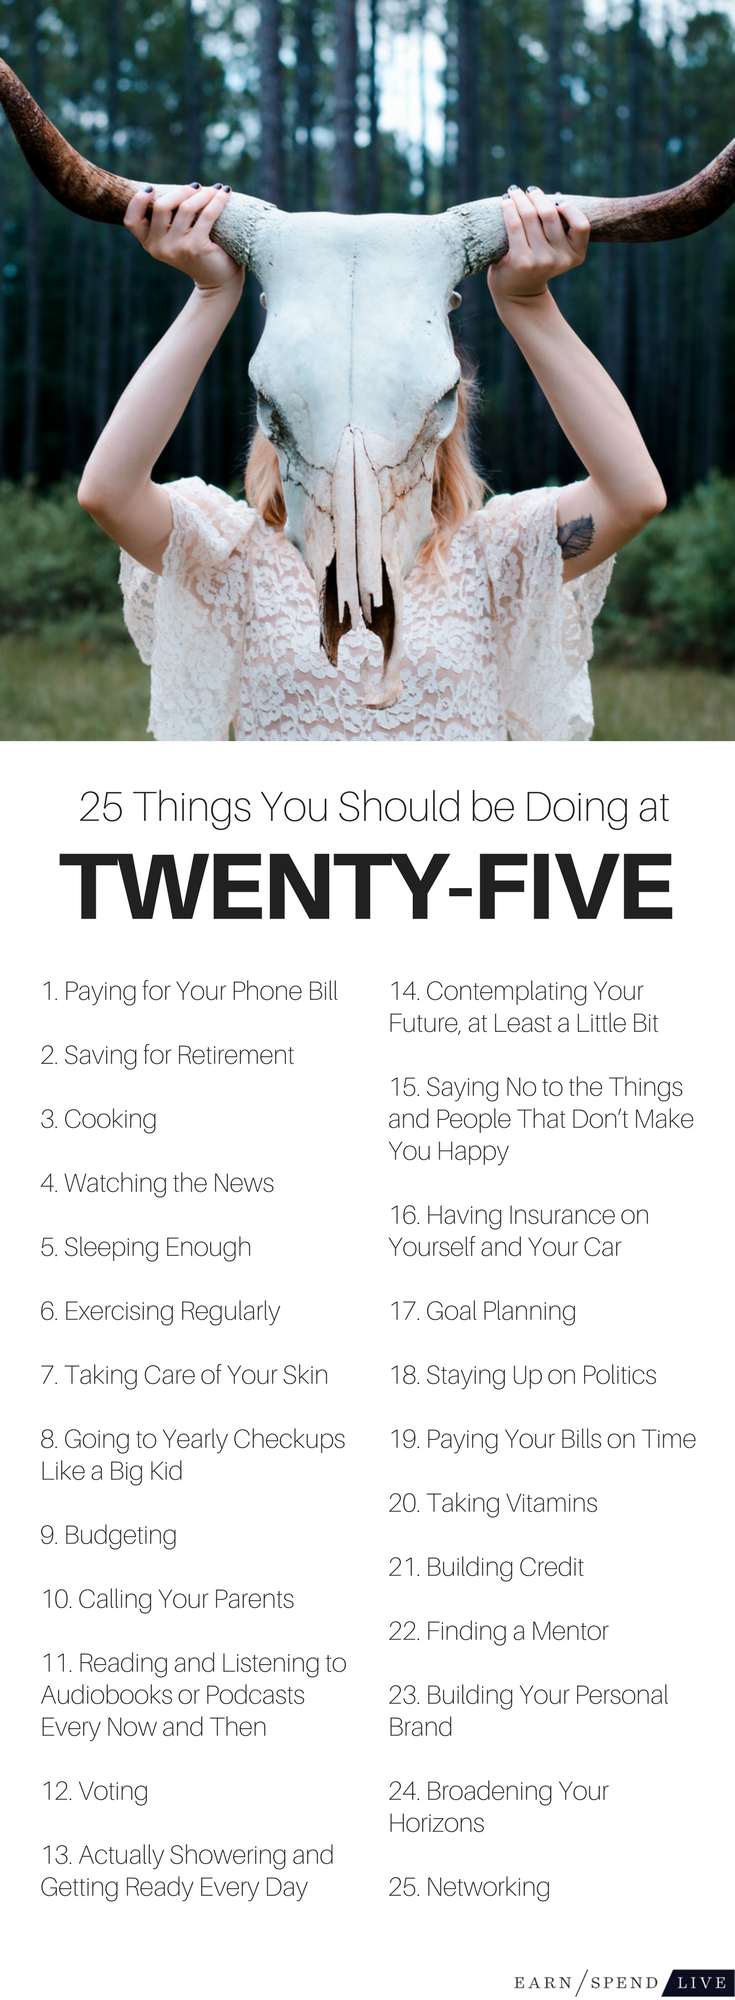 25 things you should be doing at 25 to be we and your life 25 things you should be doing at 25 twenty five is a confusing year